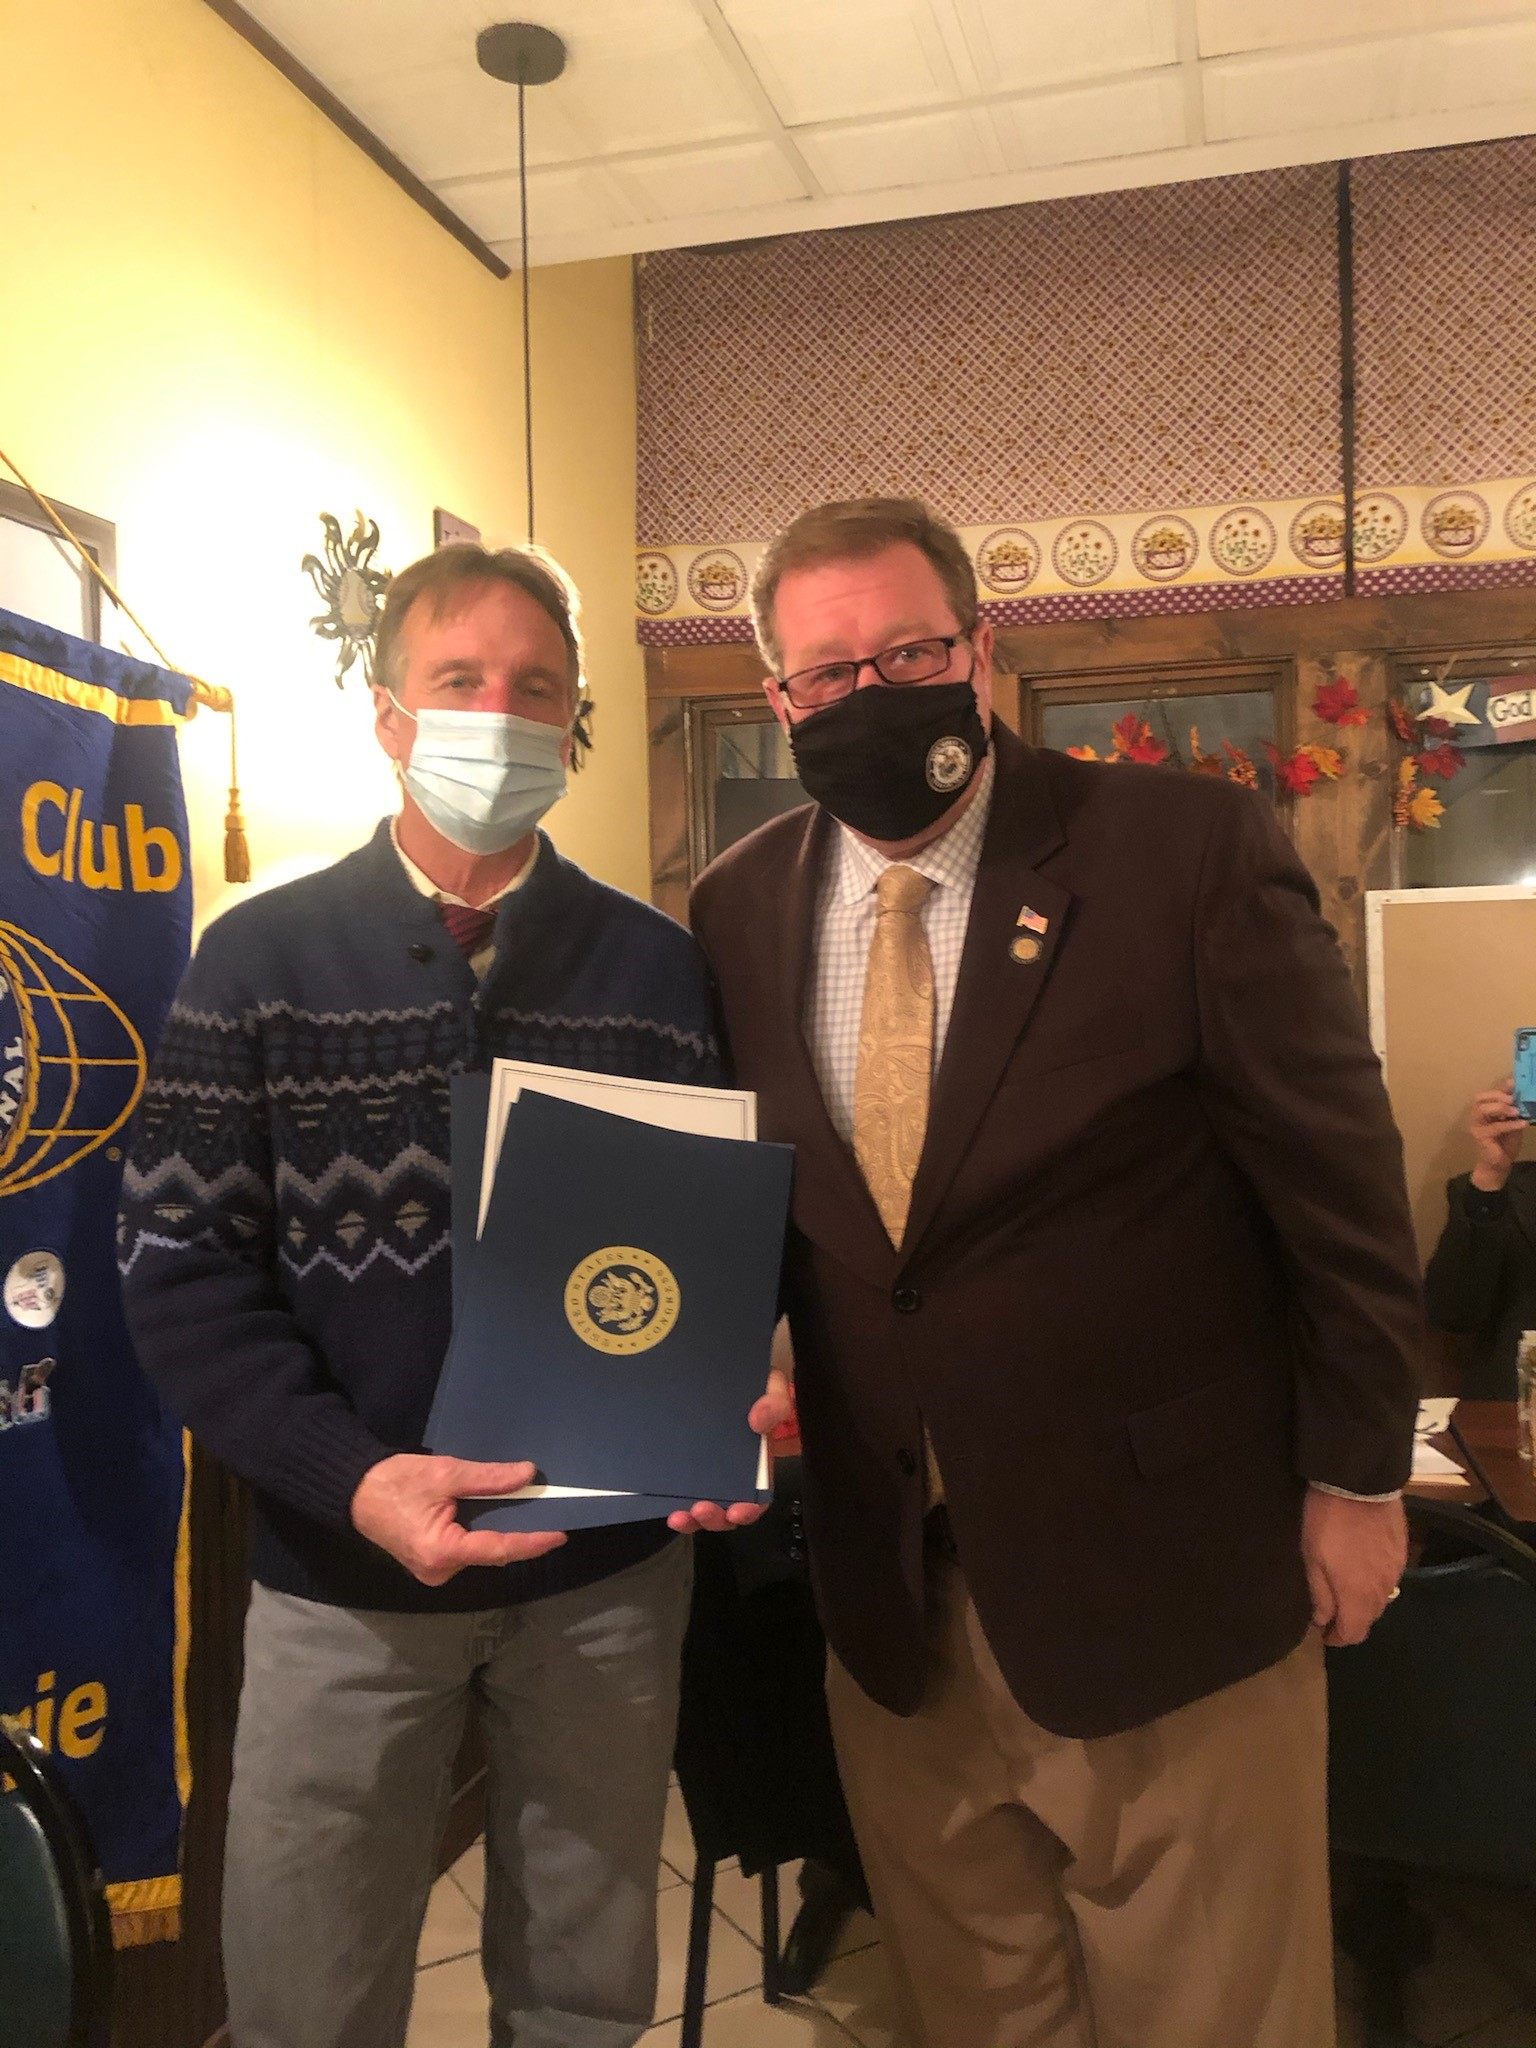 Assemblyman Chris Tague (R,C,I,Ref-Schoharie) presents Kiwanis Vice President Michael Langan with an Assembly Citation as well as recognitions from the New York State Senate and United States House of